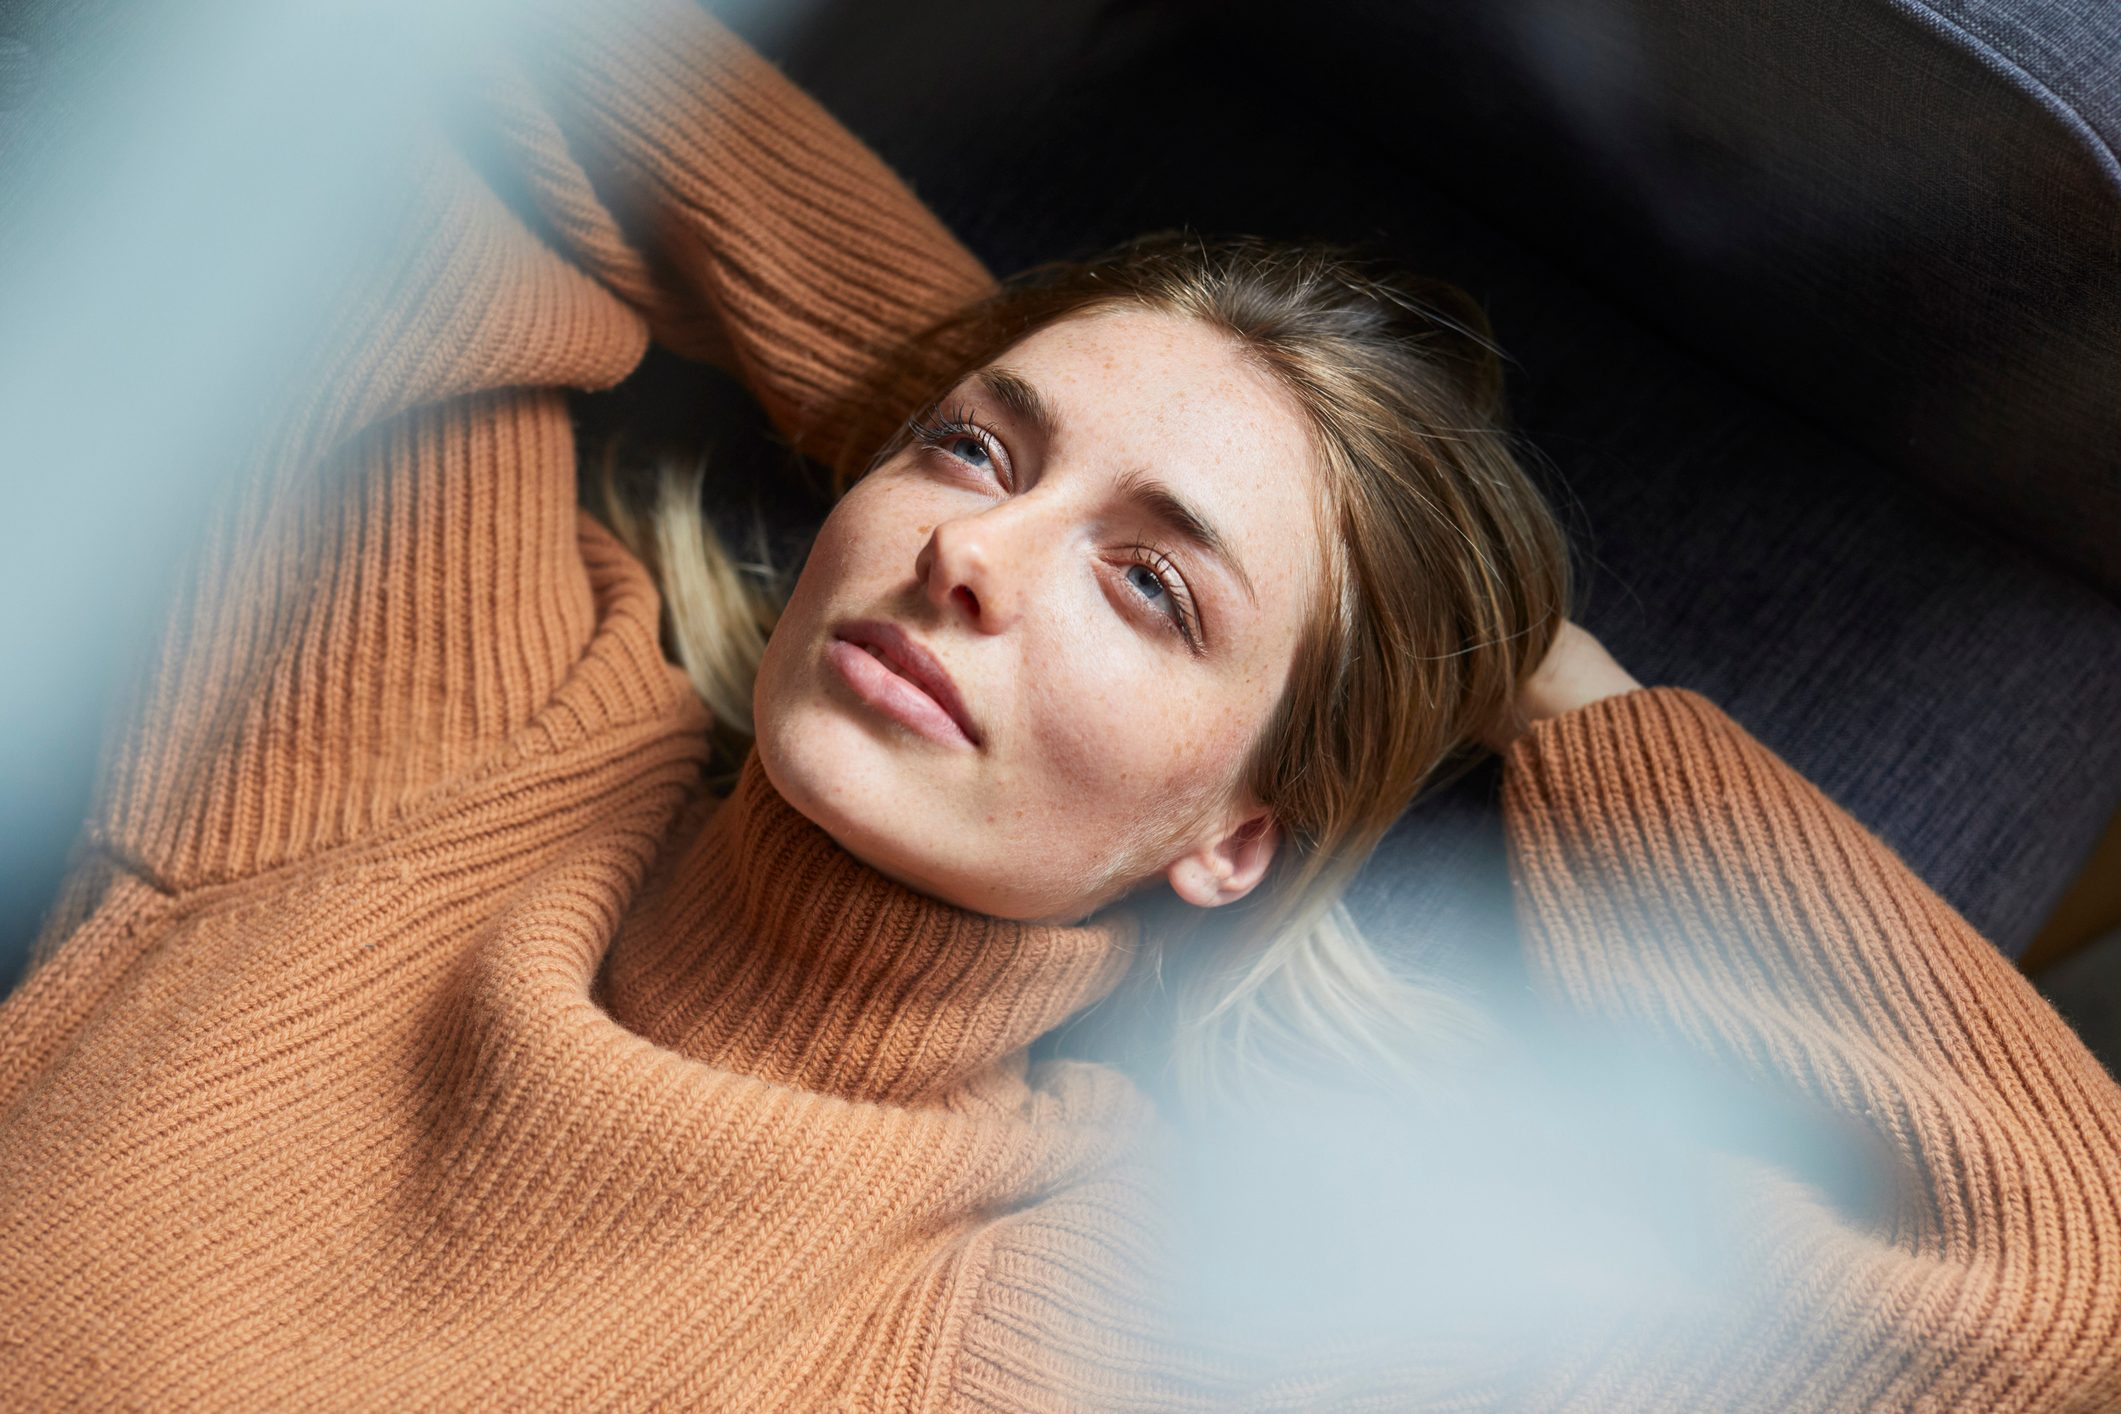 Portrait of woman relaxing and staring off